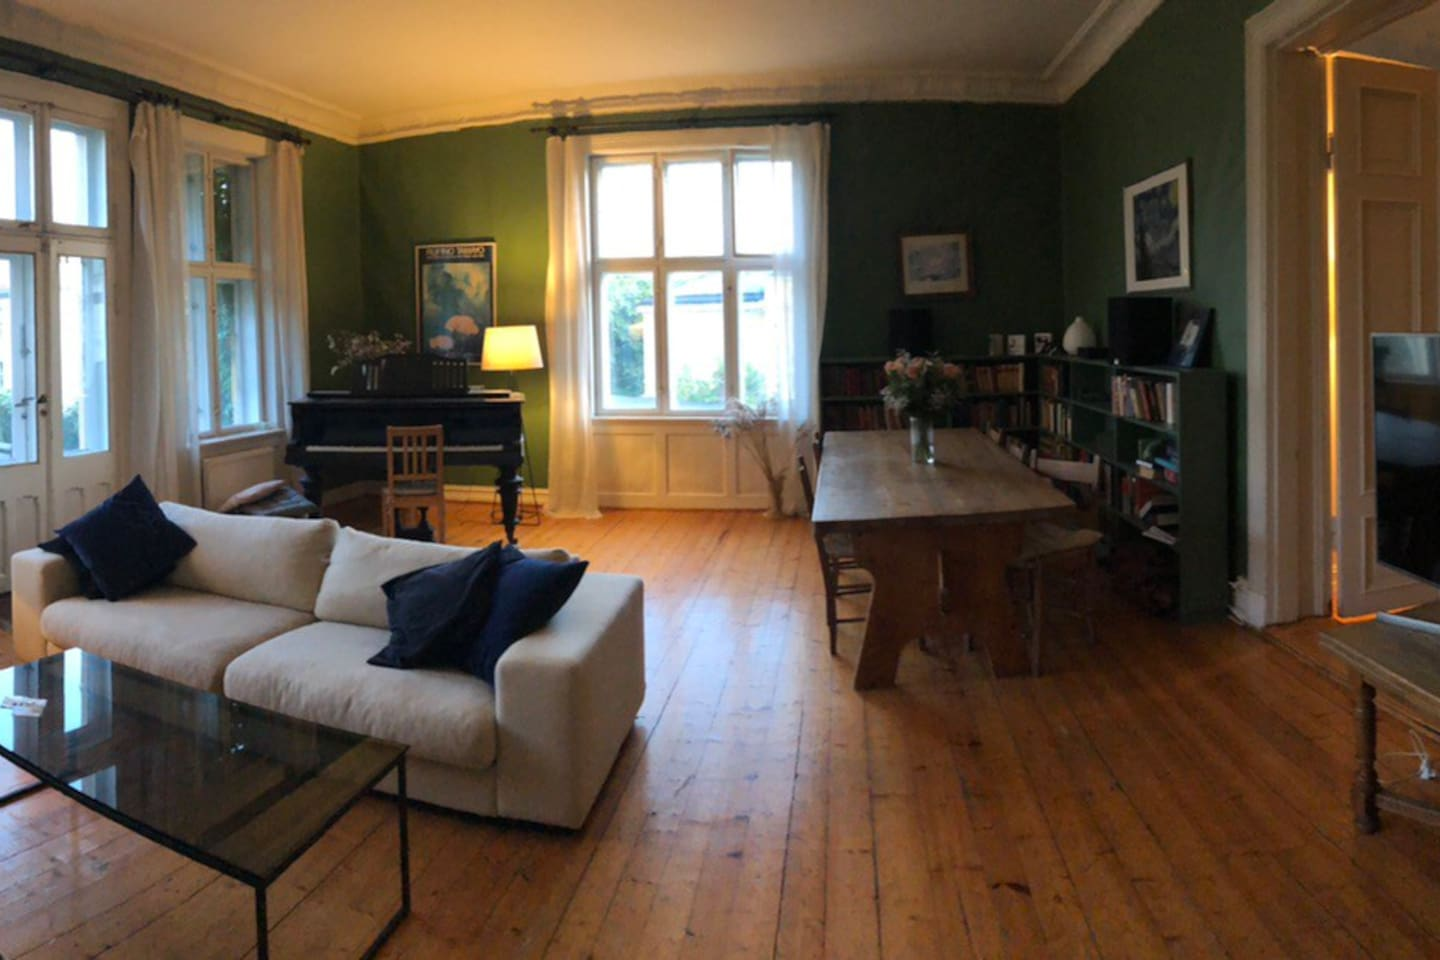 Huge Apartment with everything you need in a  beautiful neighborhood close to everything in the city of Oslo.